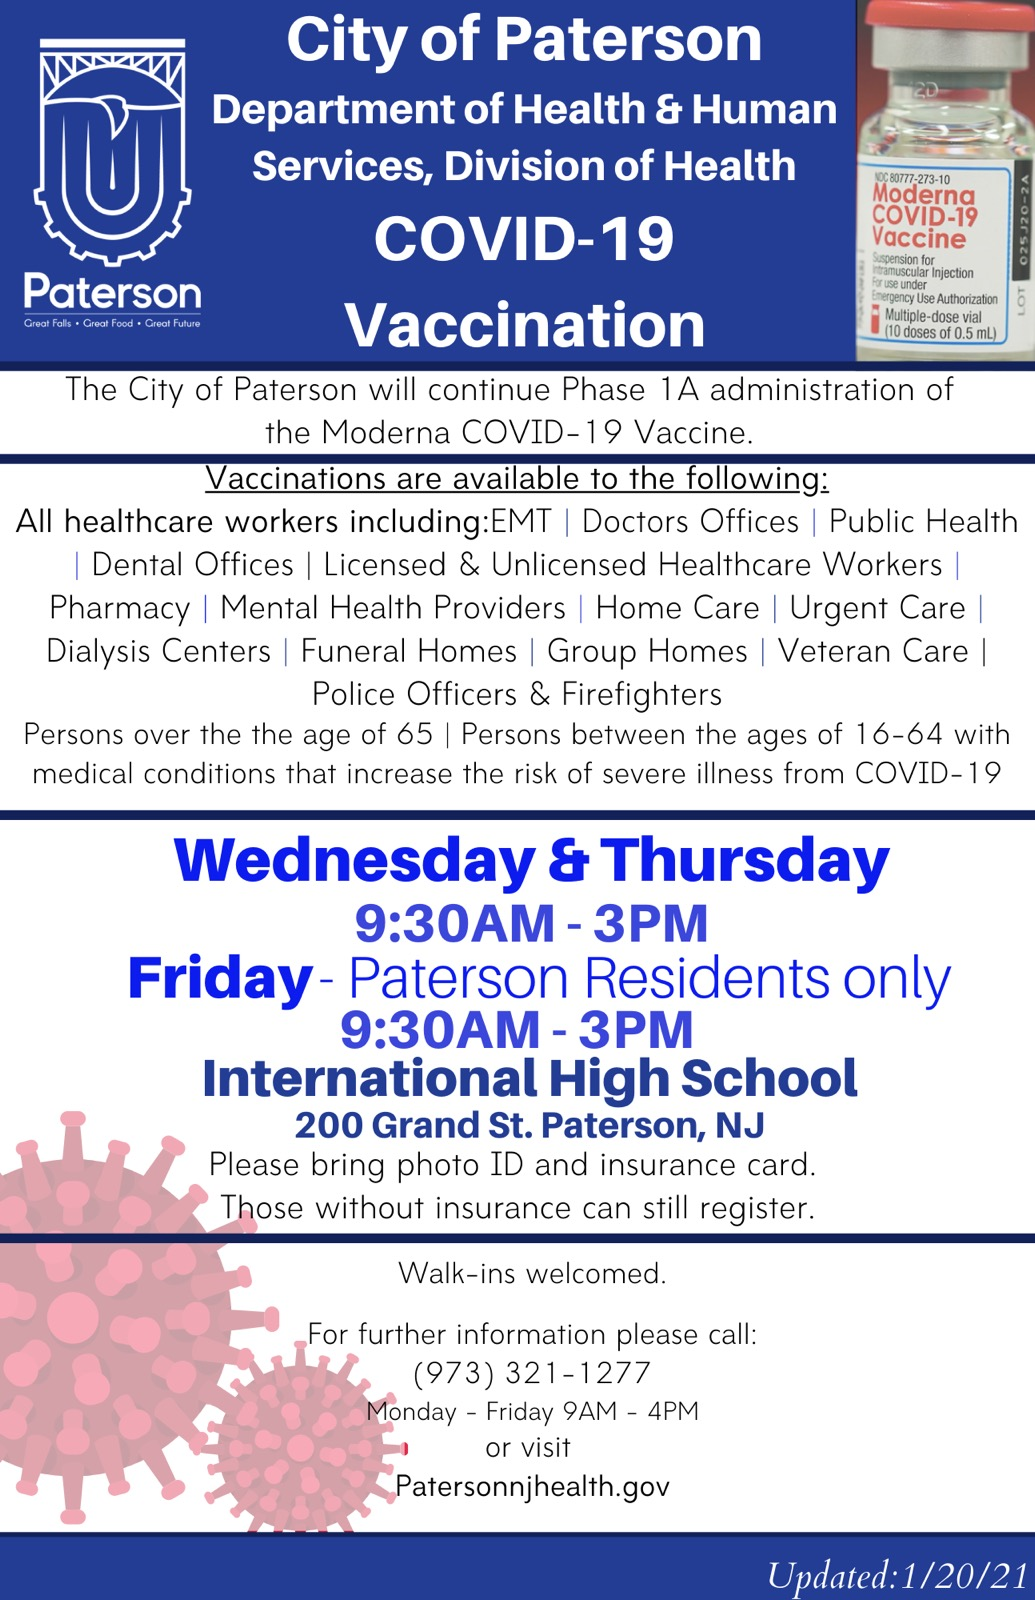 City of Paterson Vaccination Hours